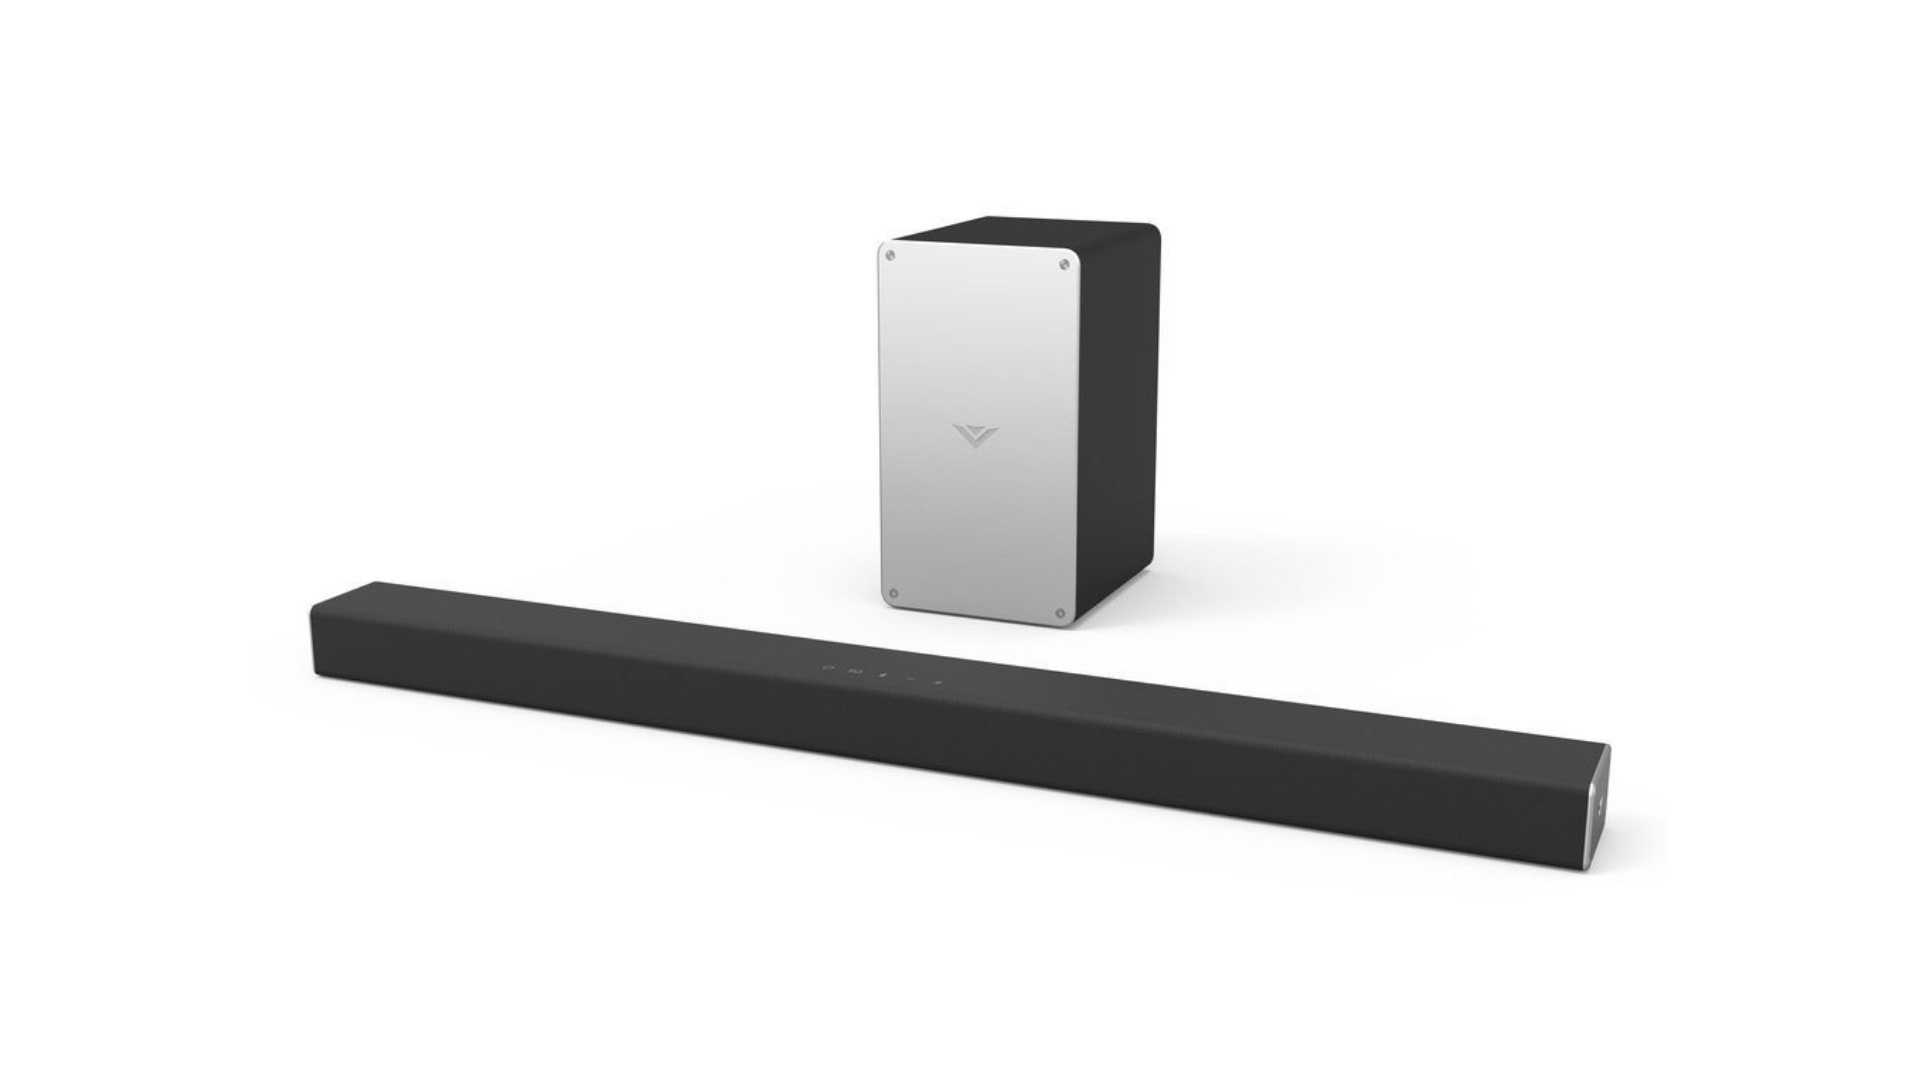 "Best Soundbar under 200 - VIZIO SB3621n-F8M 36"" 2.1 Channel Sound Bar"